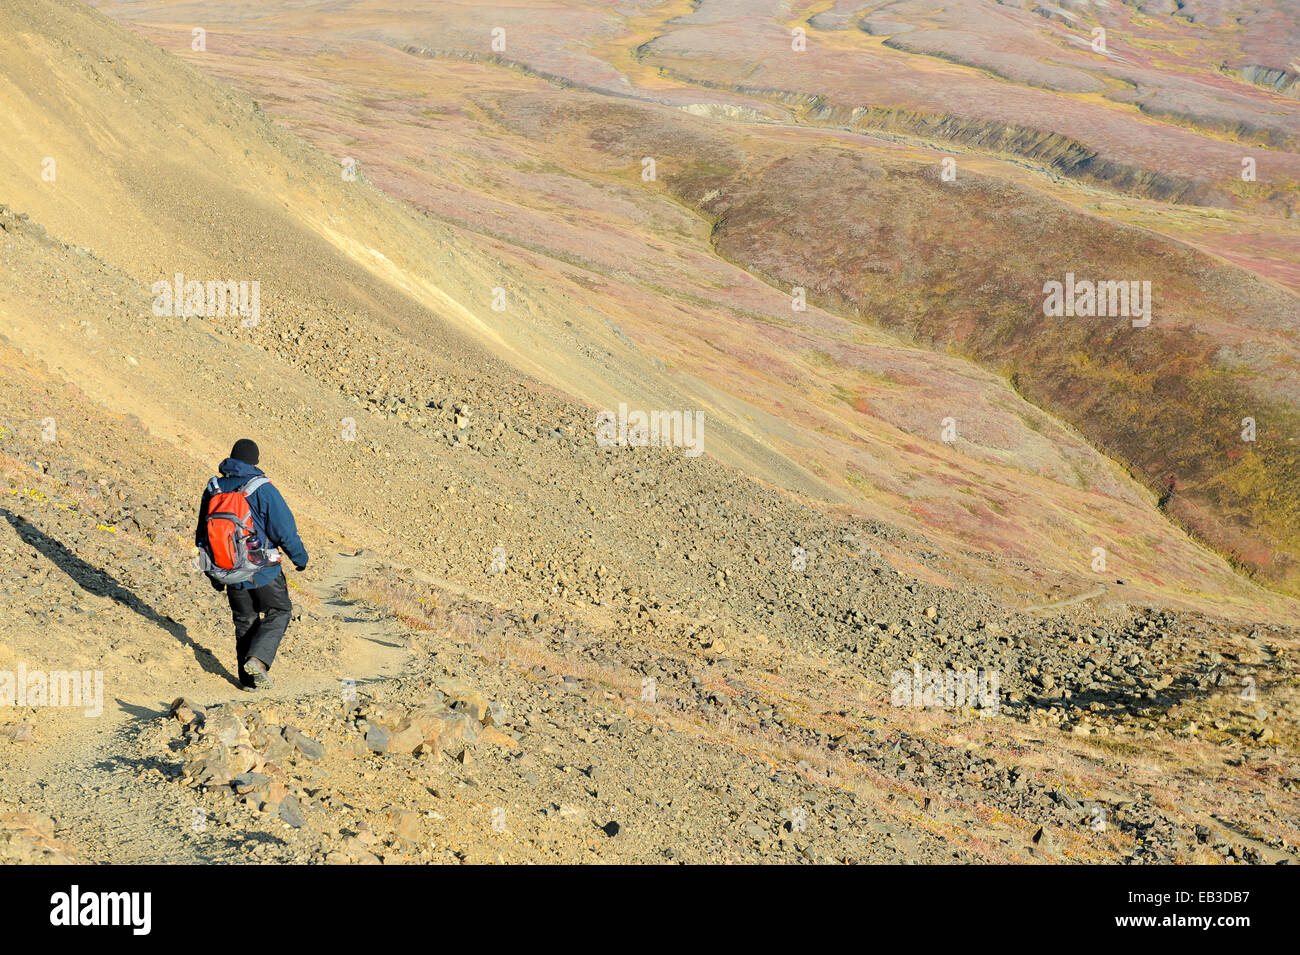 USA, Alaska, Denali National Park, Male hiker on trail - Stock Image